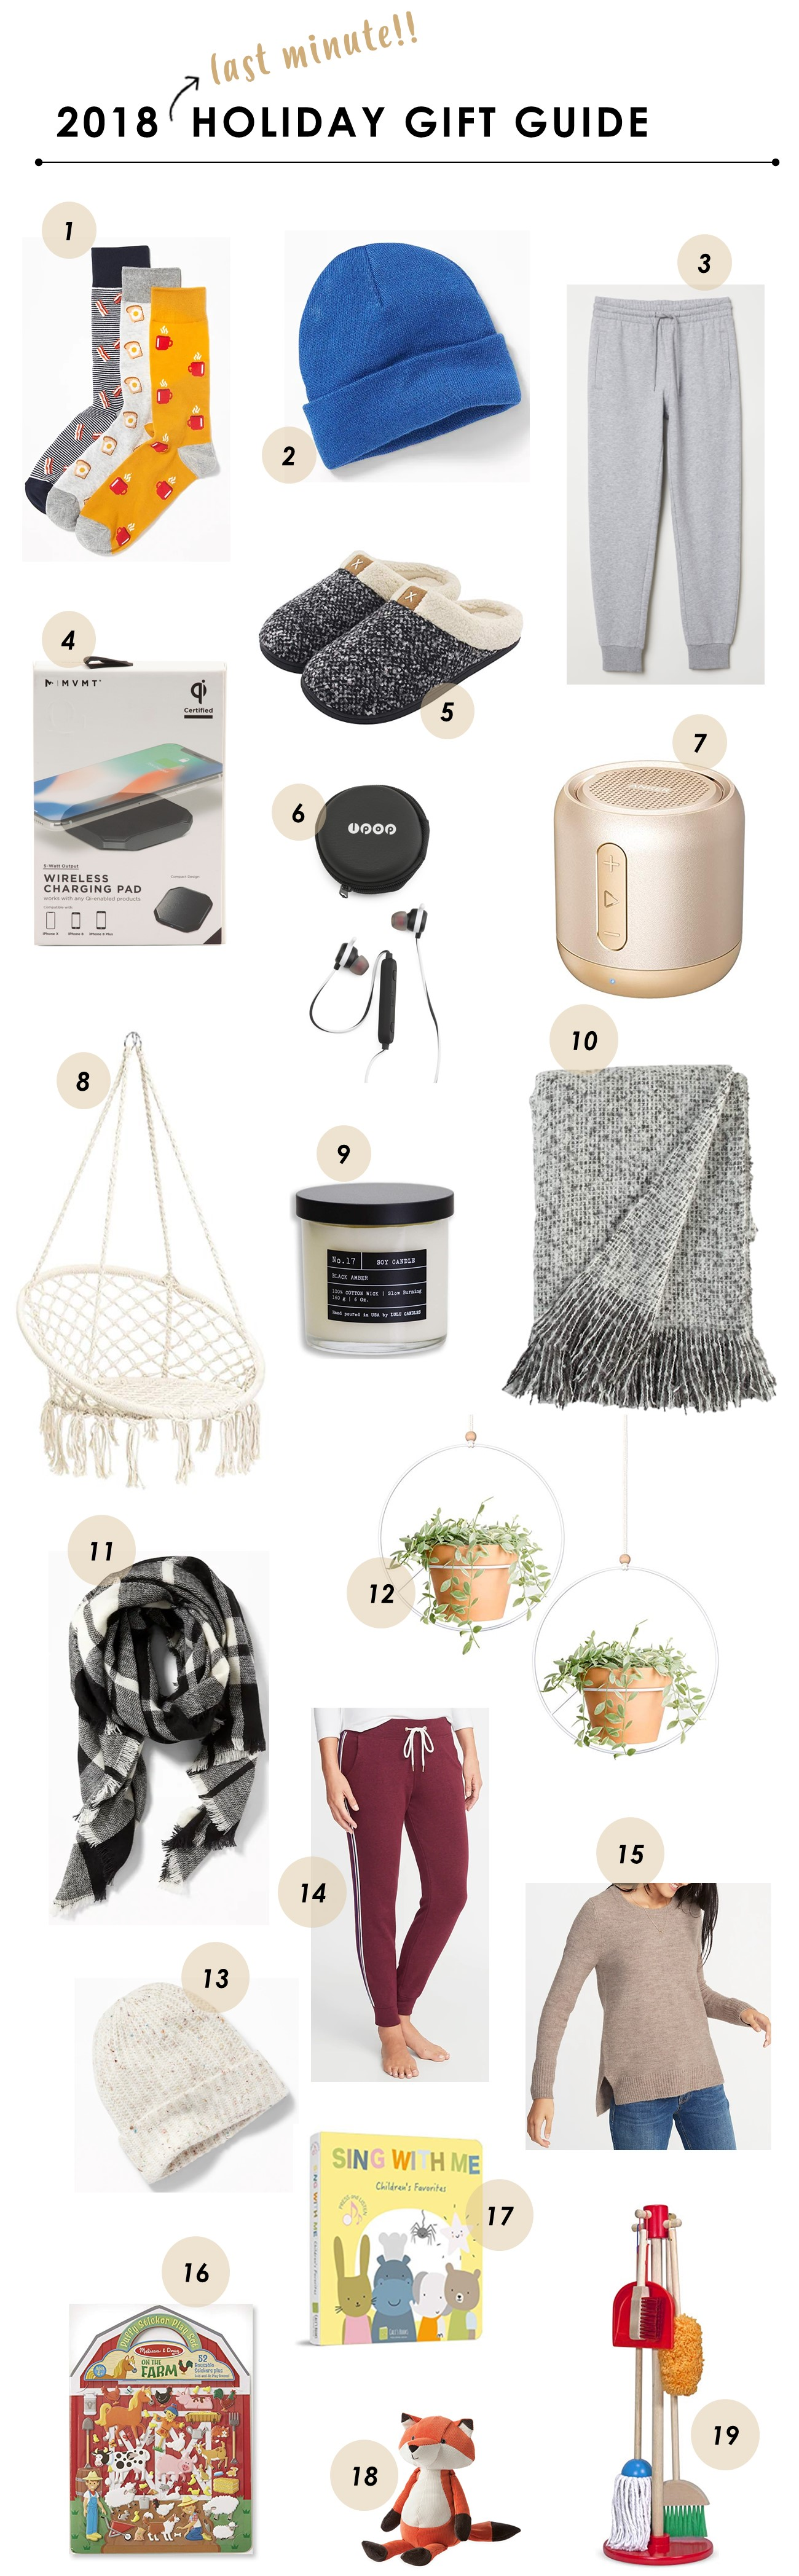 Holiday+gift+guide+2018.jpg